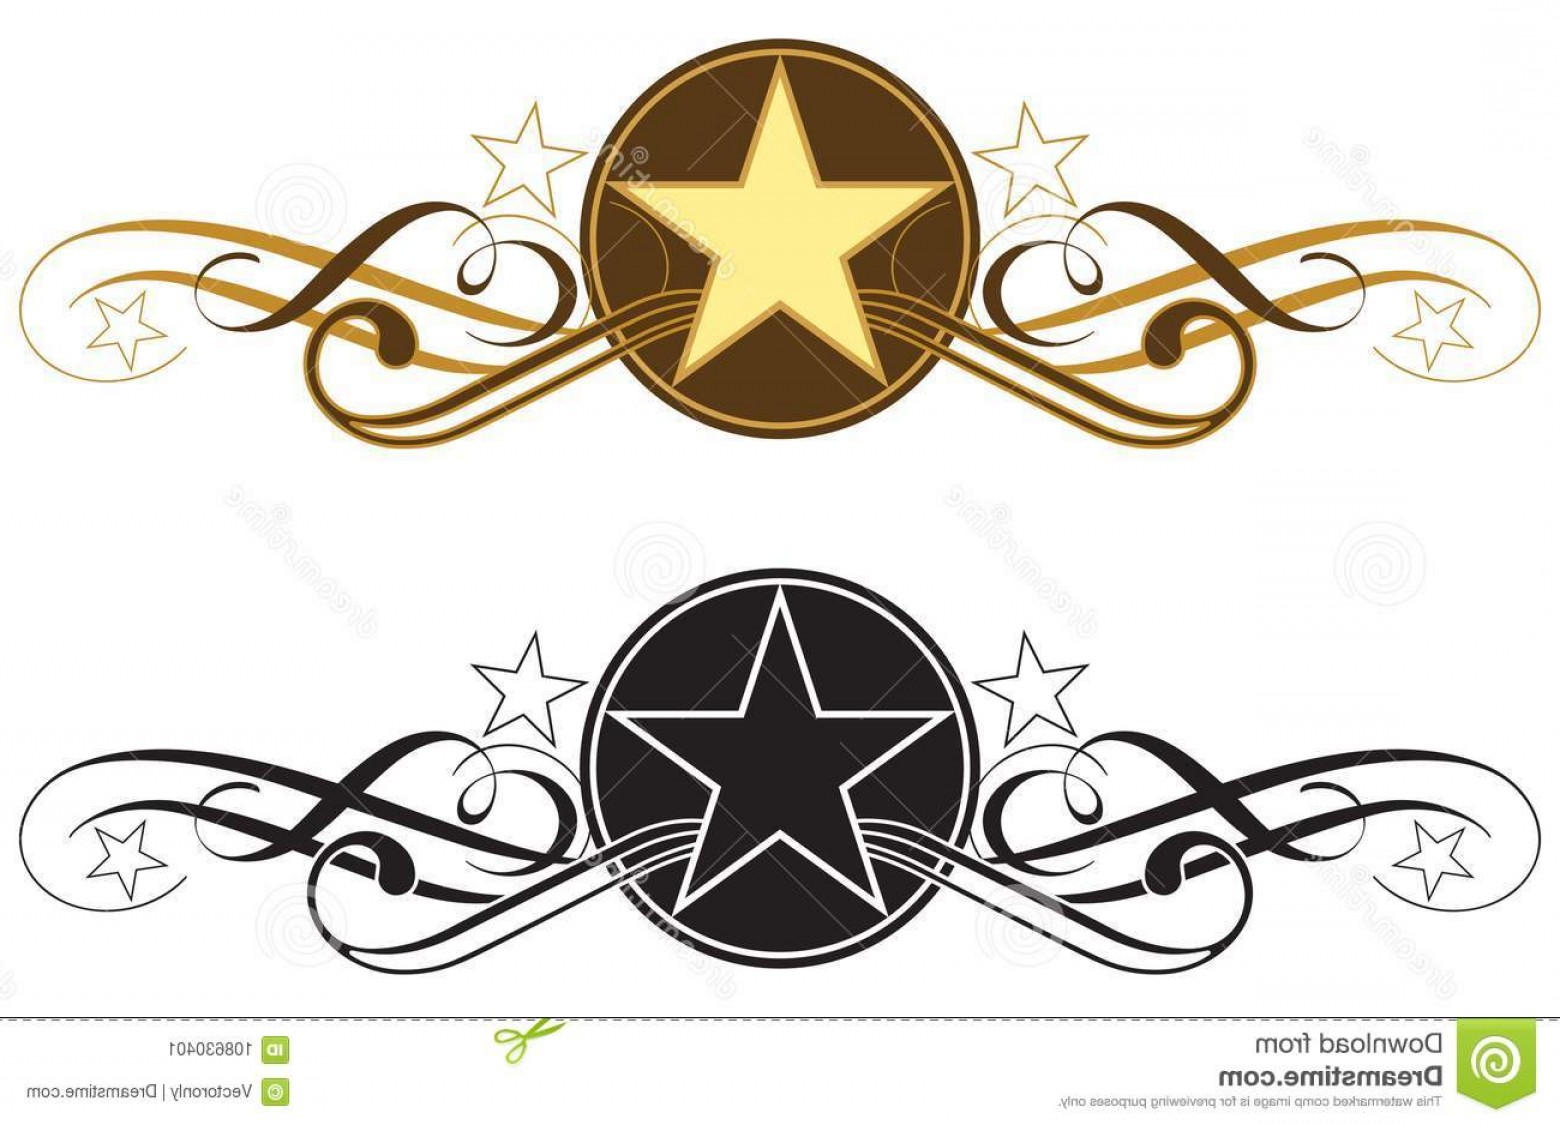 Western Star Vector Graphics: Star Scroll Border Western Type Vector Illustraration Illustration Like Divider White Background Image